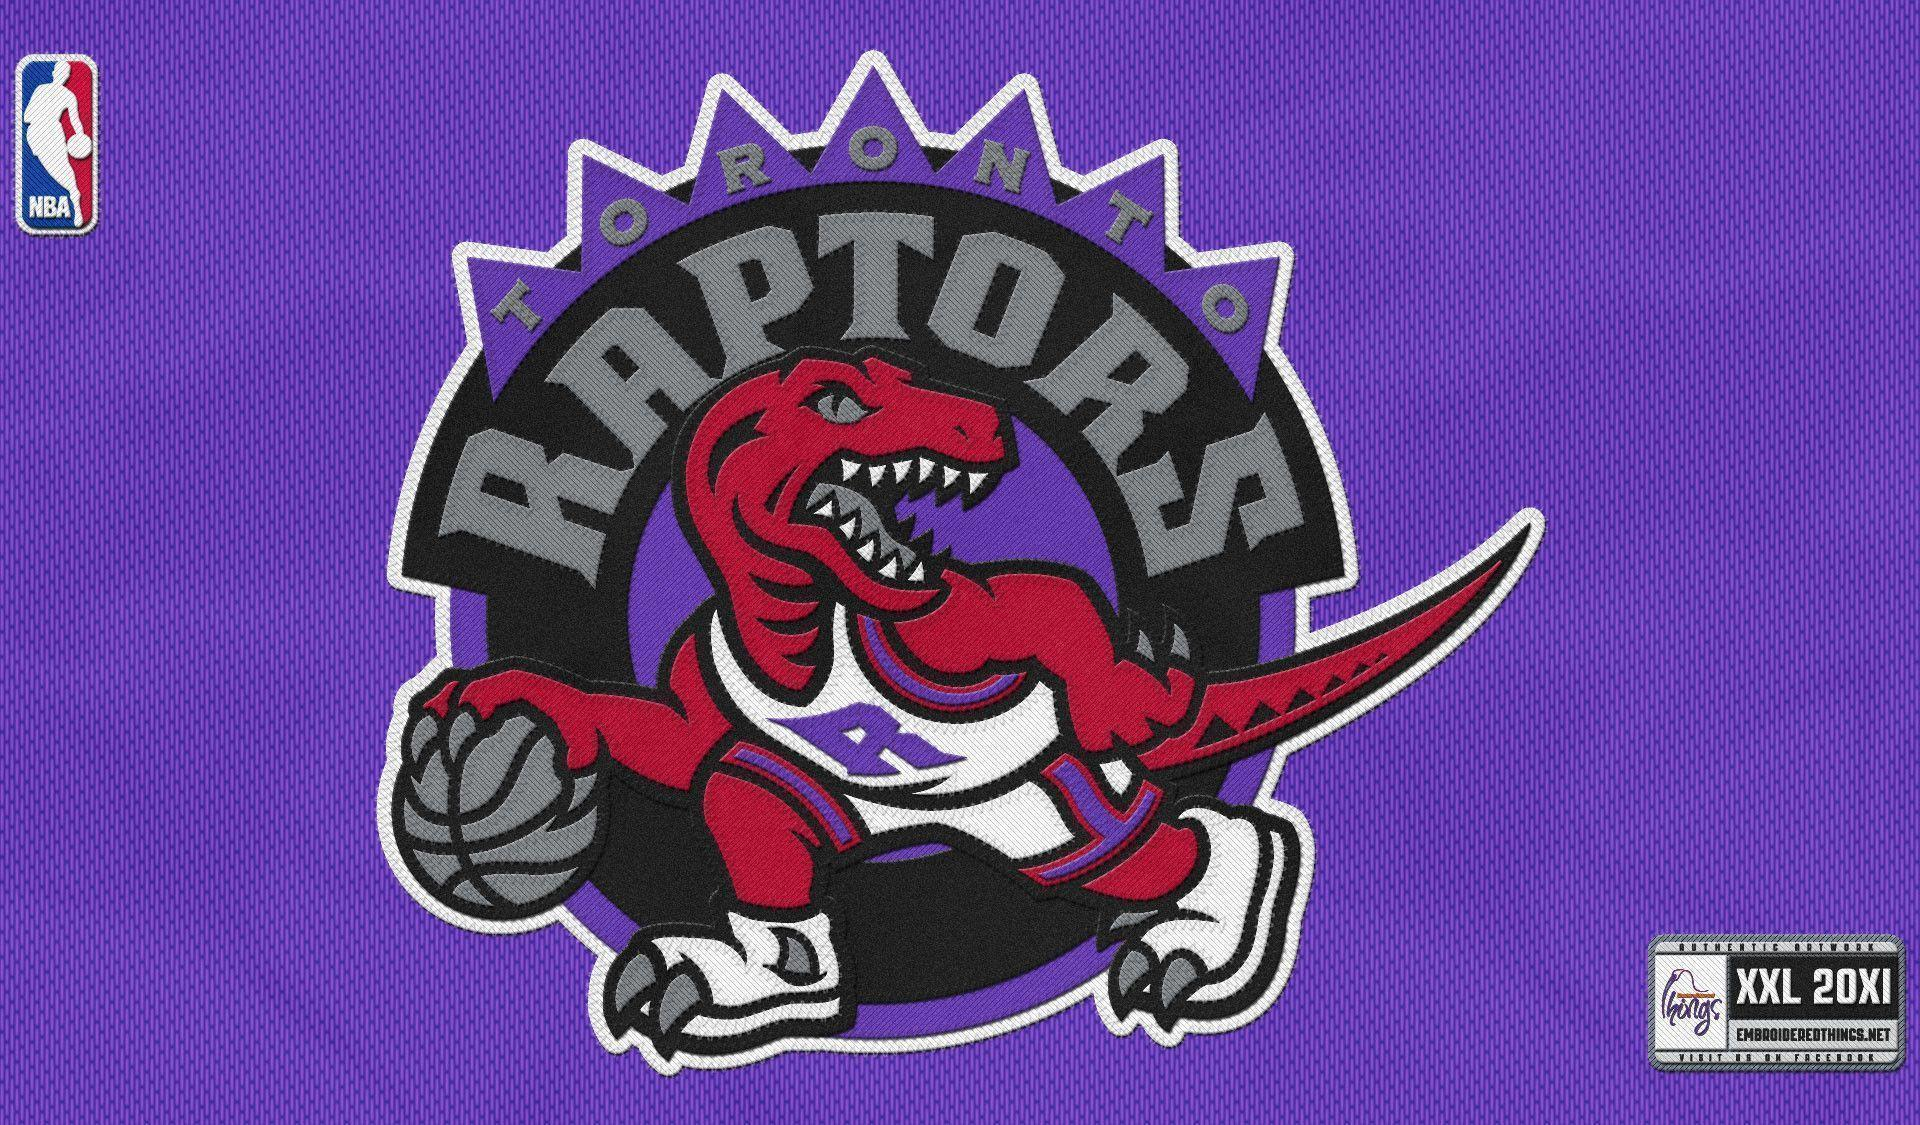 toronto raptors wallpaper wwwimgkidcom the image kid